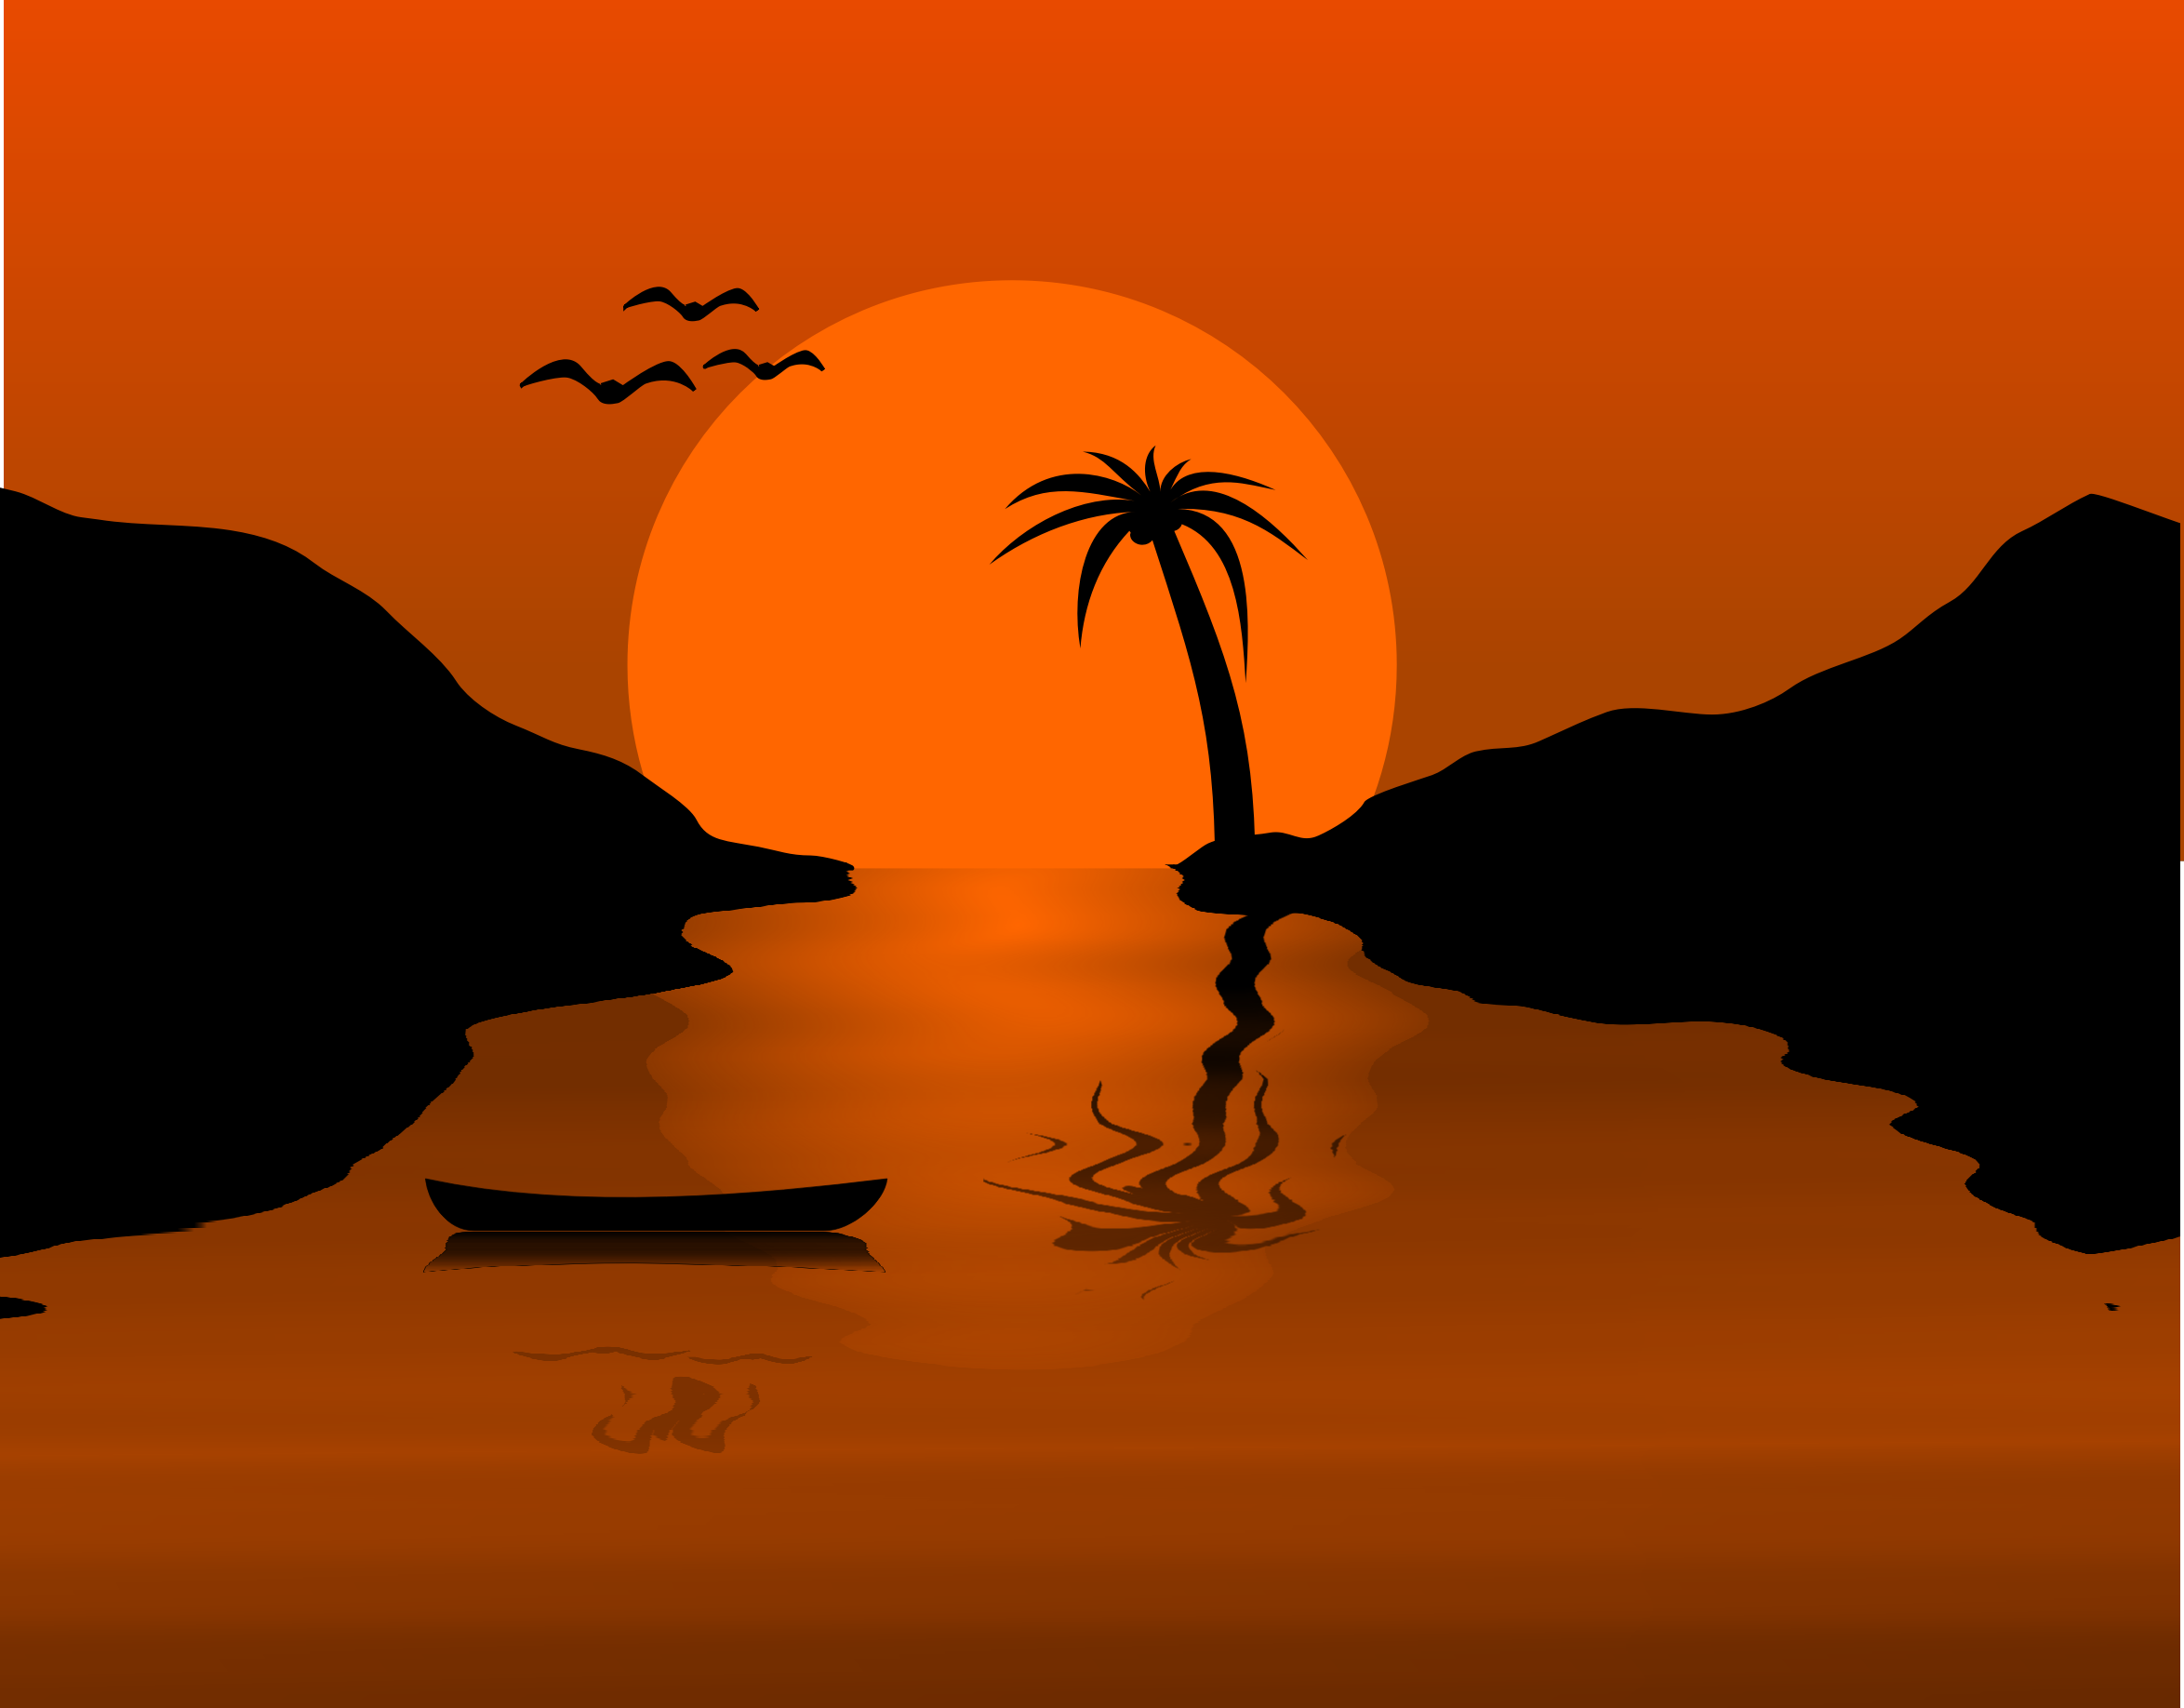 Sunset clipart. Waterscene big image png